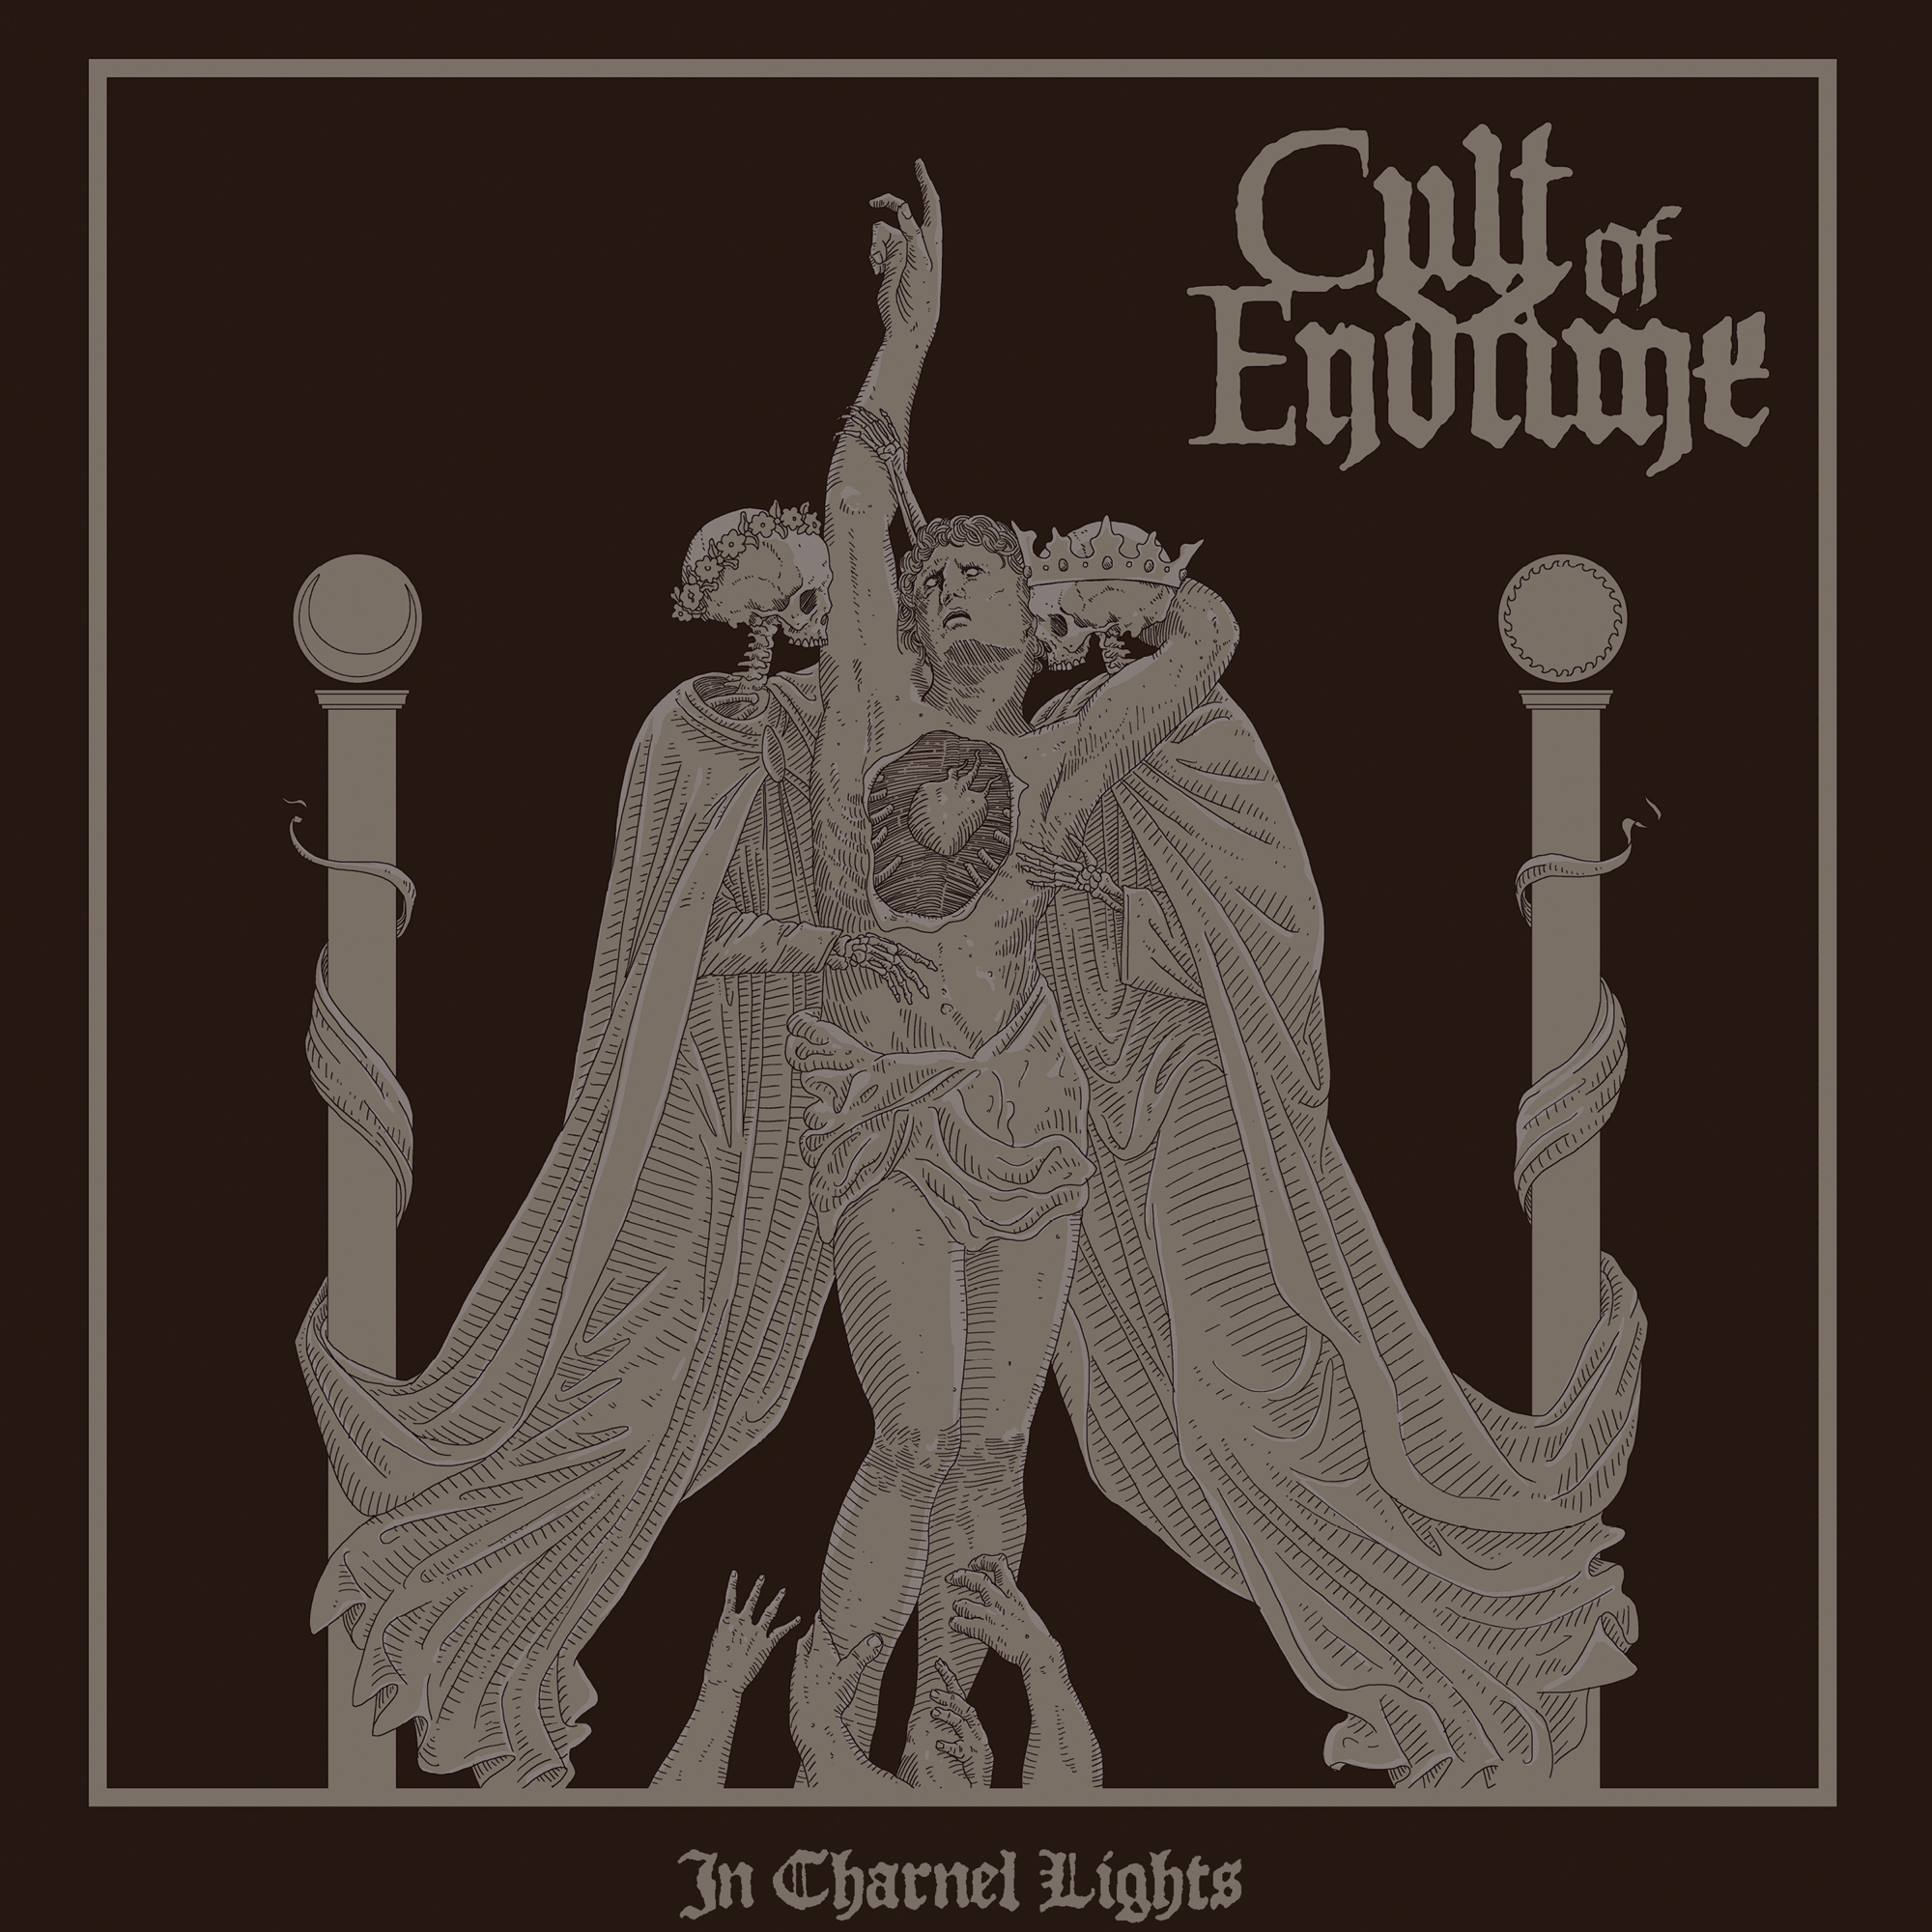 Cult of Endtime – In Charnel Lights Review